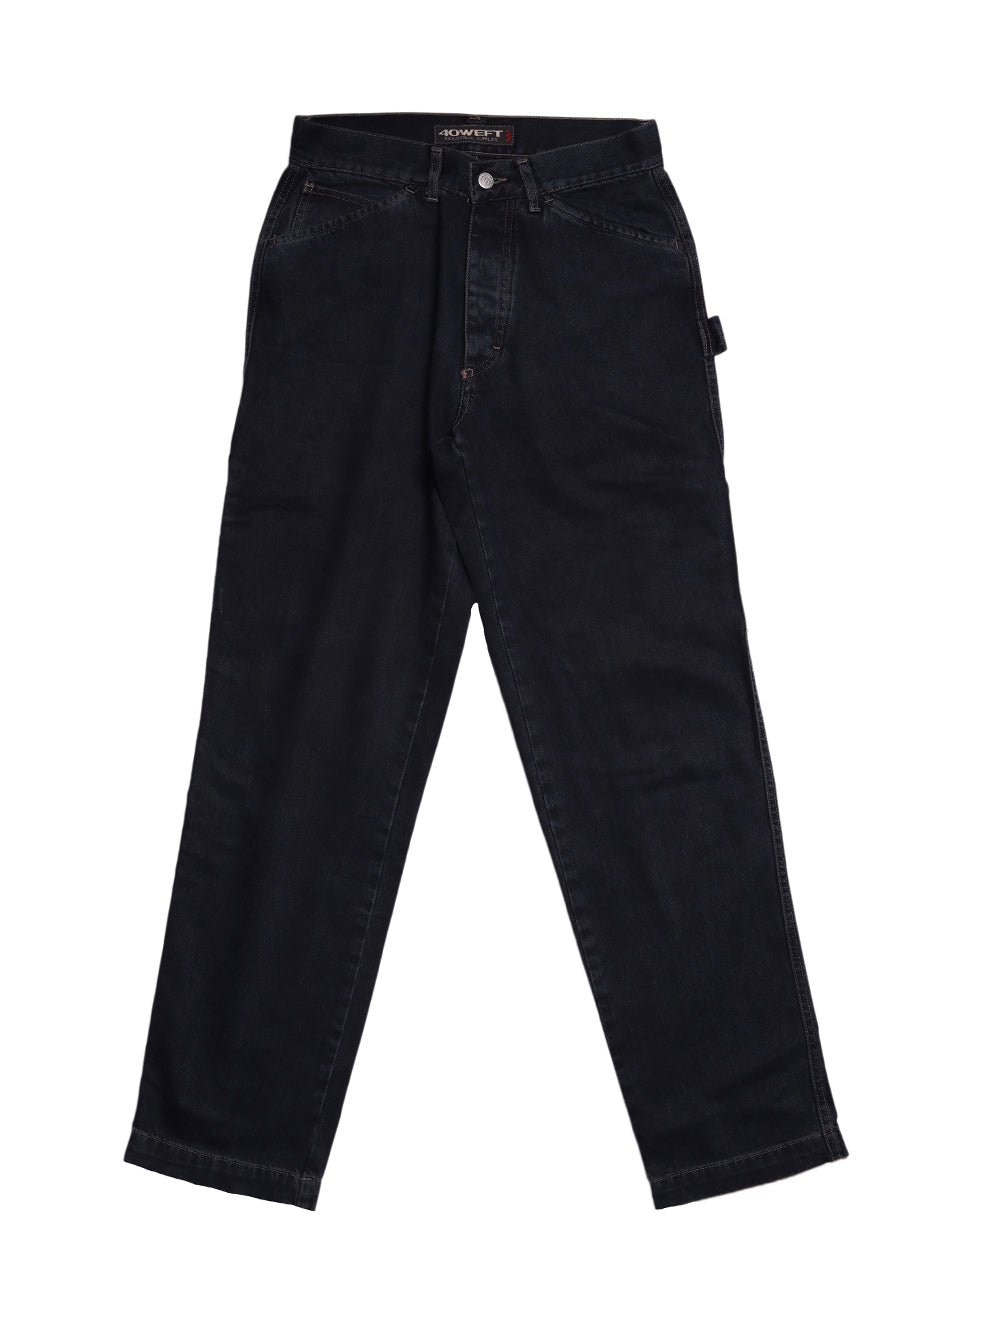 Front photo of Preloved 40 Weft Blue Man's trousers - size 36/S